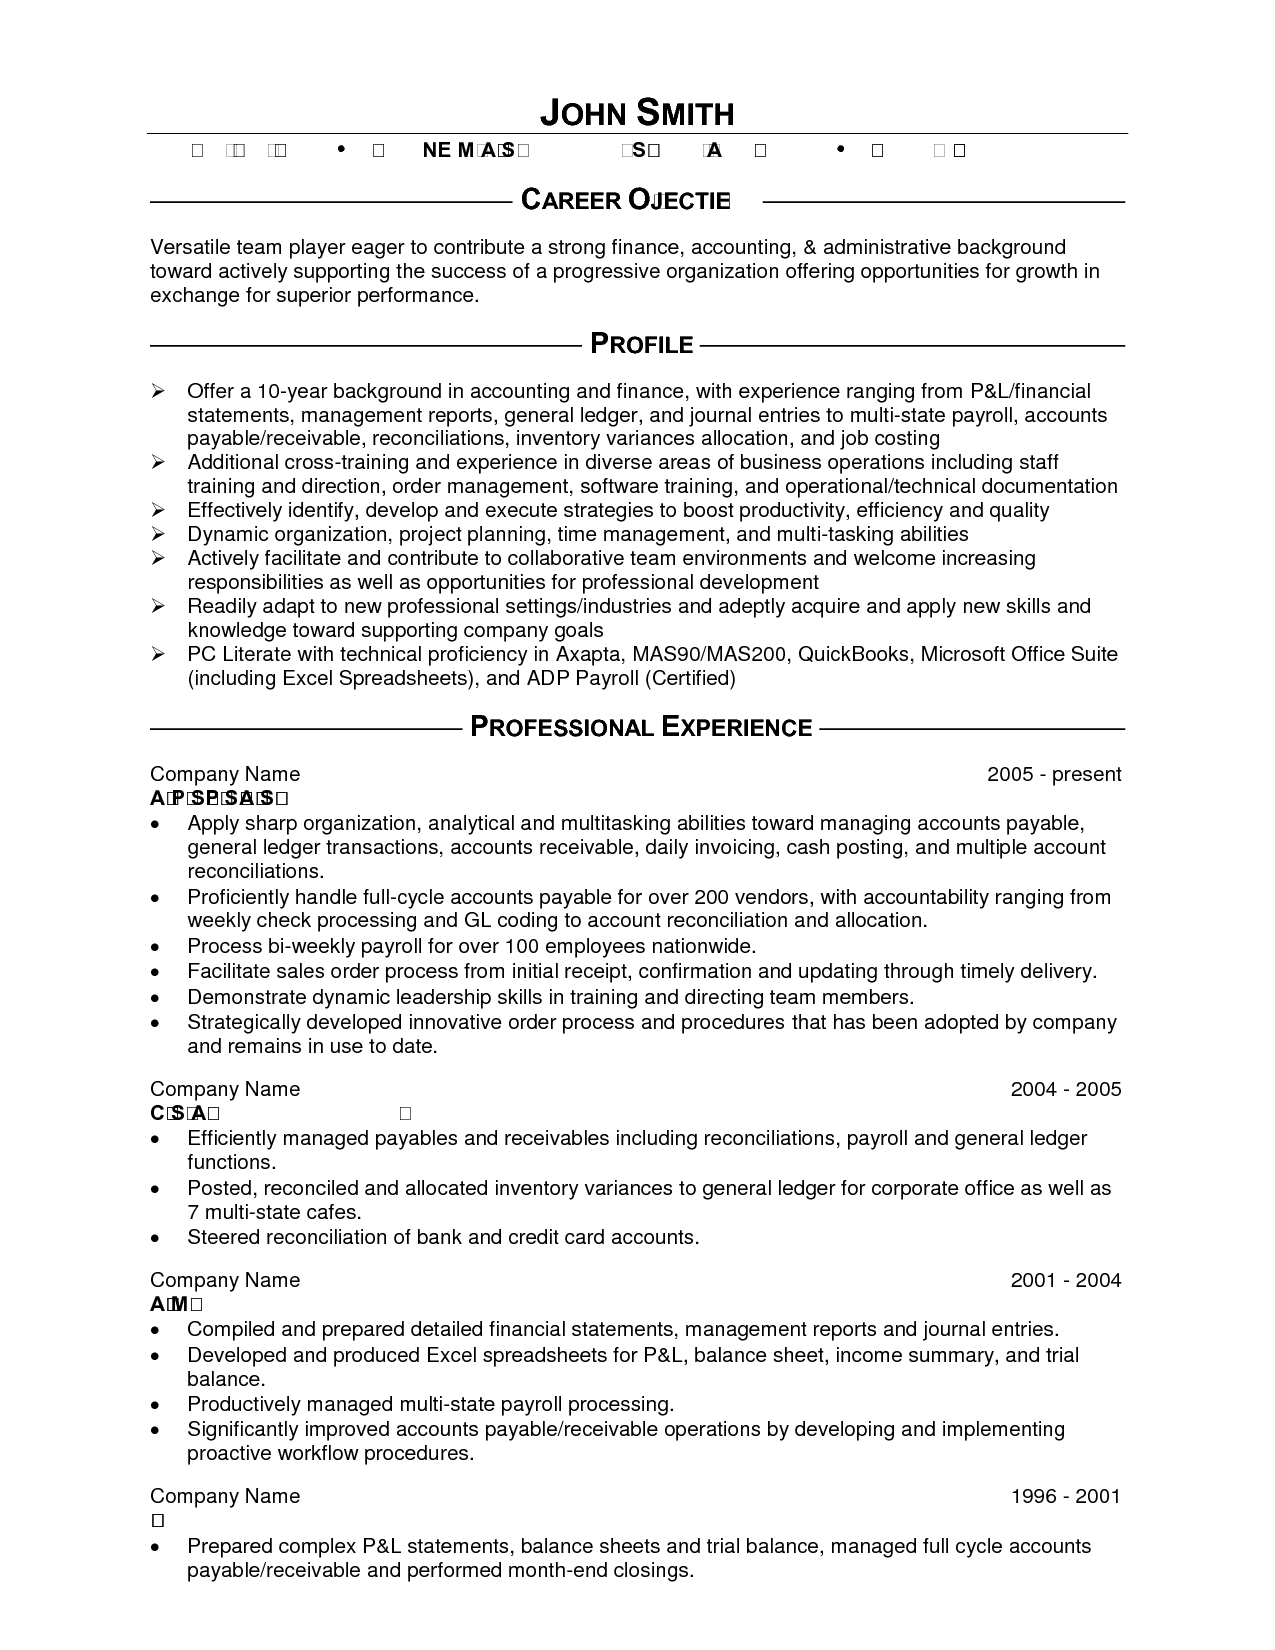 Resume For Accountant Position  Resume Job Objective Examples